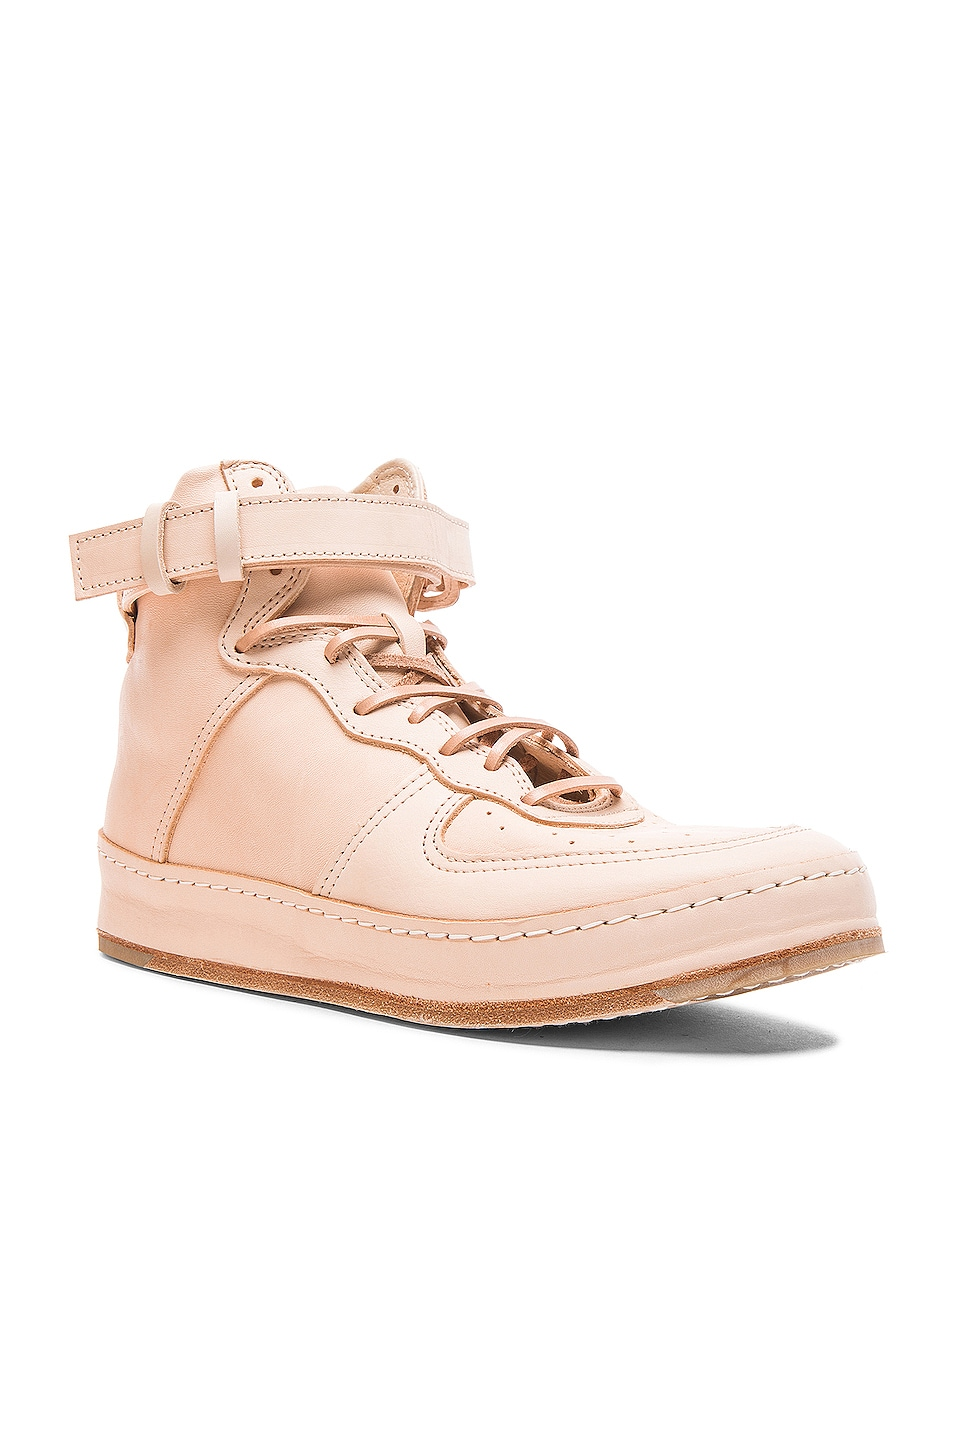 Image 2 of Hender Scheme Manual Industrial Product 01 in Natural